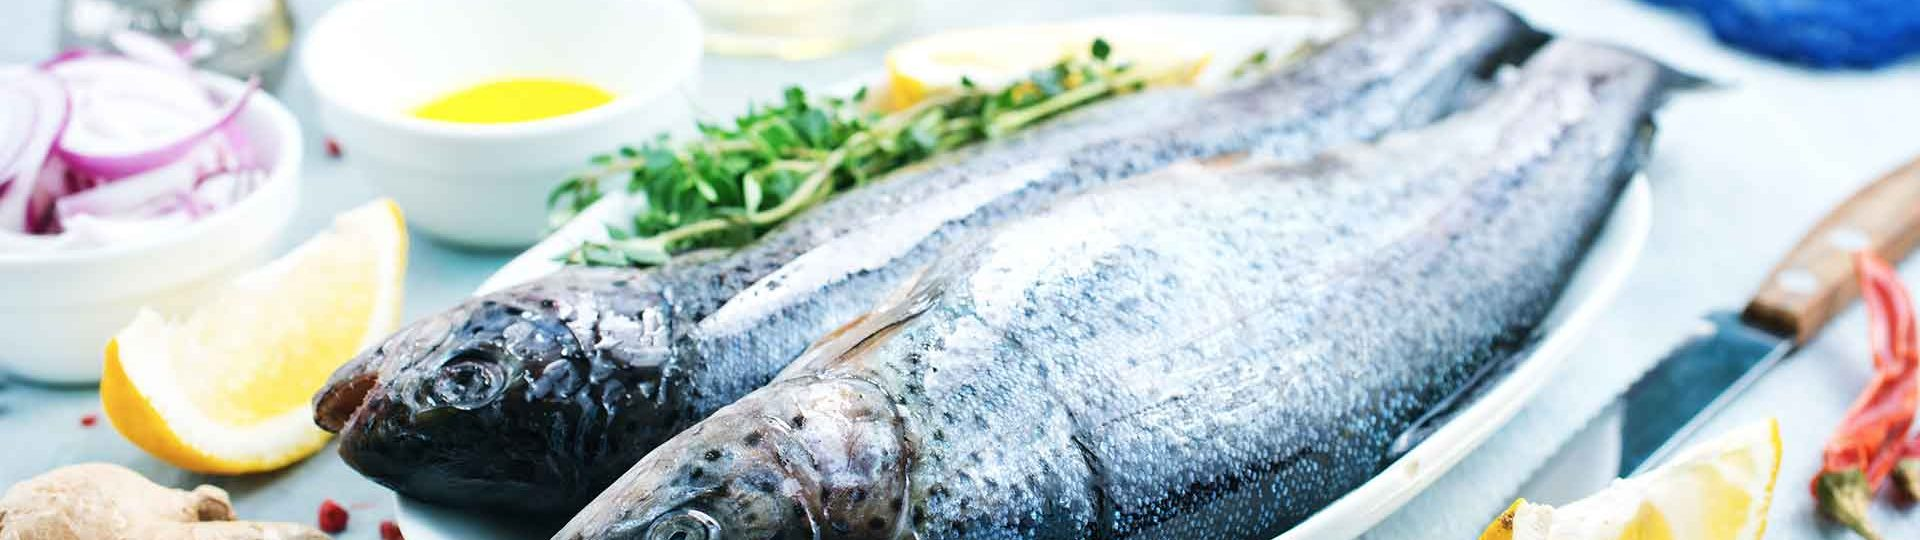 frozen-seafood-suppliers-bangalore